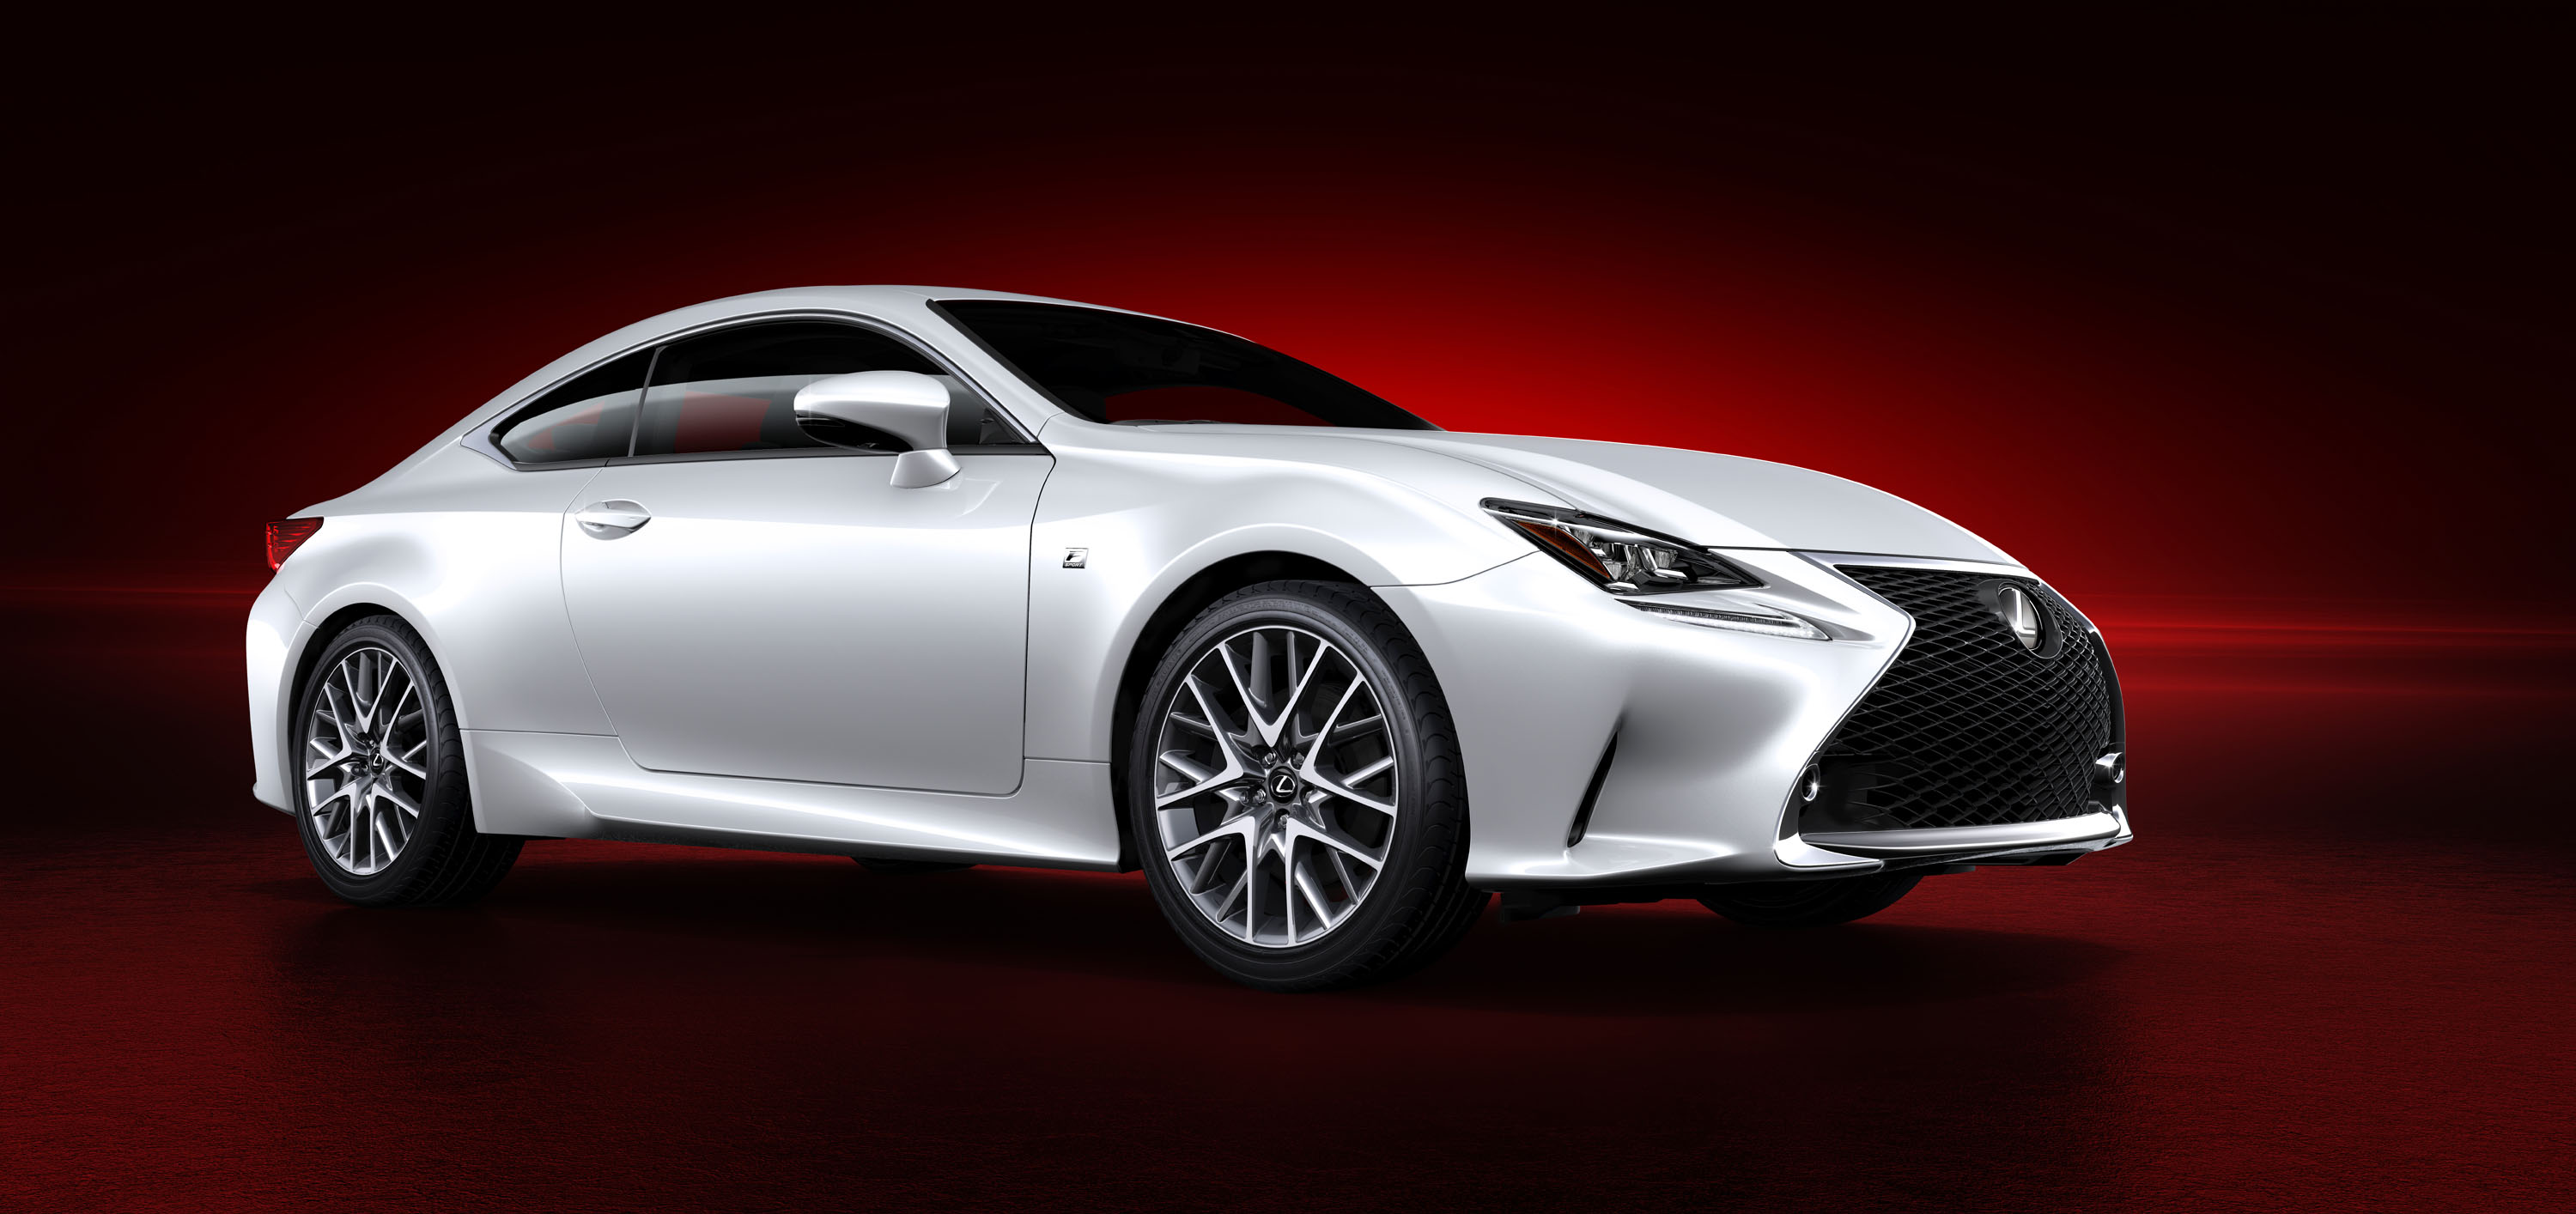 lexus unveils the all new 2015 rc 350 f sport hi res pics tmr zoo. Black Bedroom Furniture Sets. Home Design Ideas